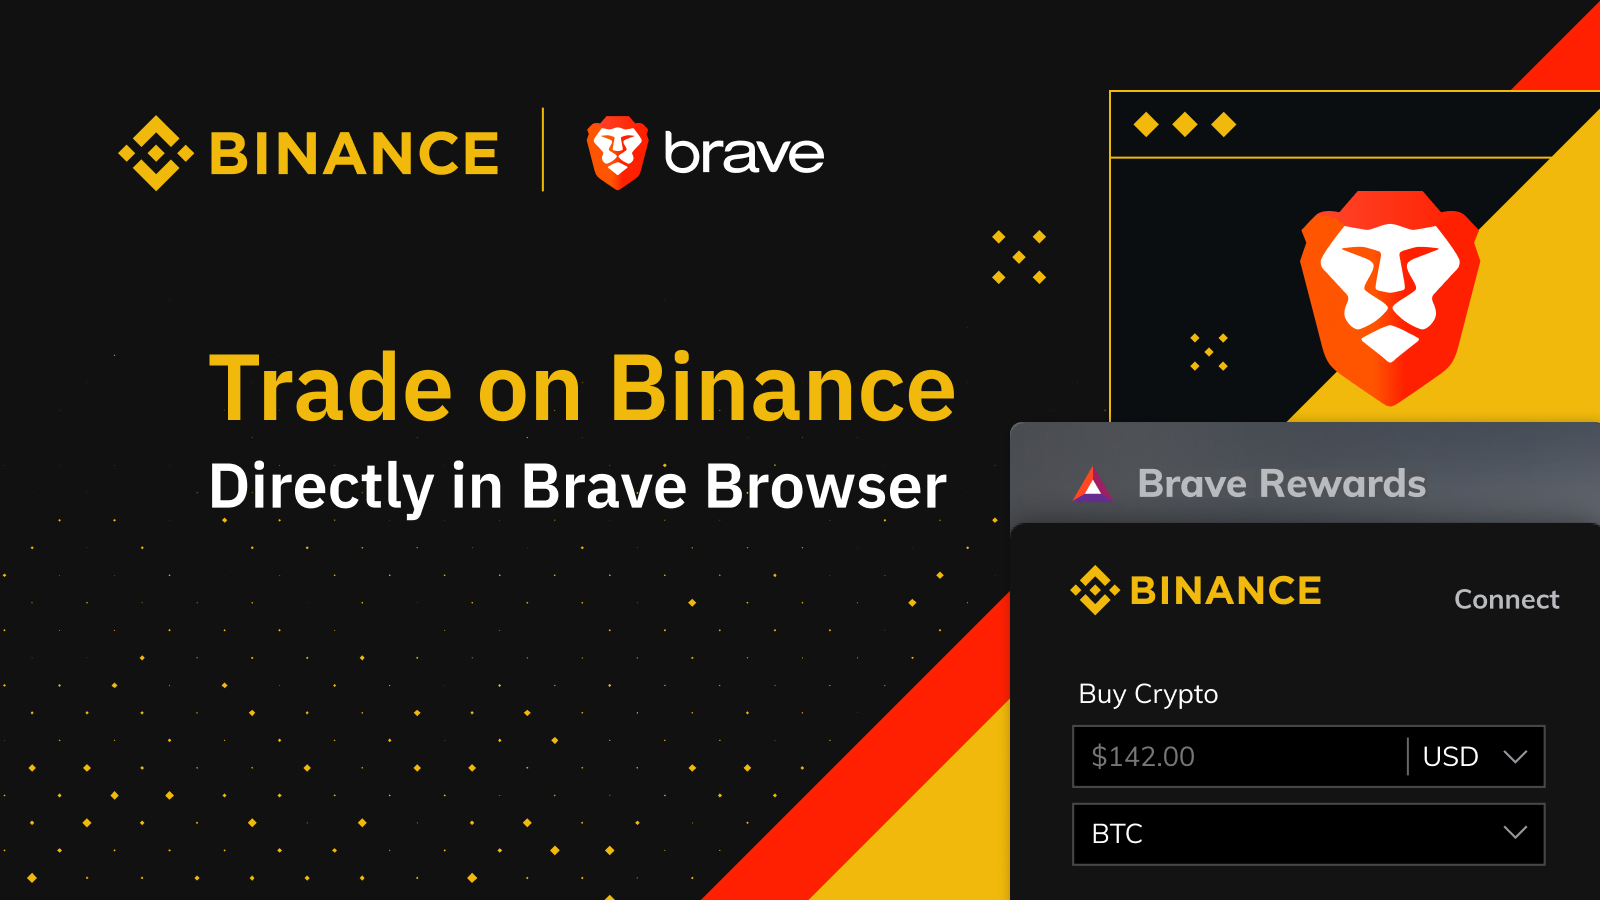 Brave and Binance Partner to Bring Cryptocurrency Trading Directly Into the  Browser | Binance Blog